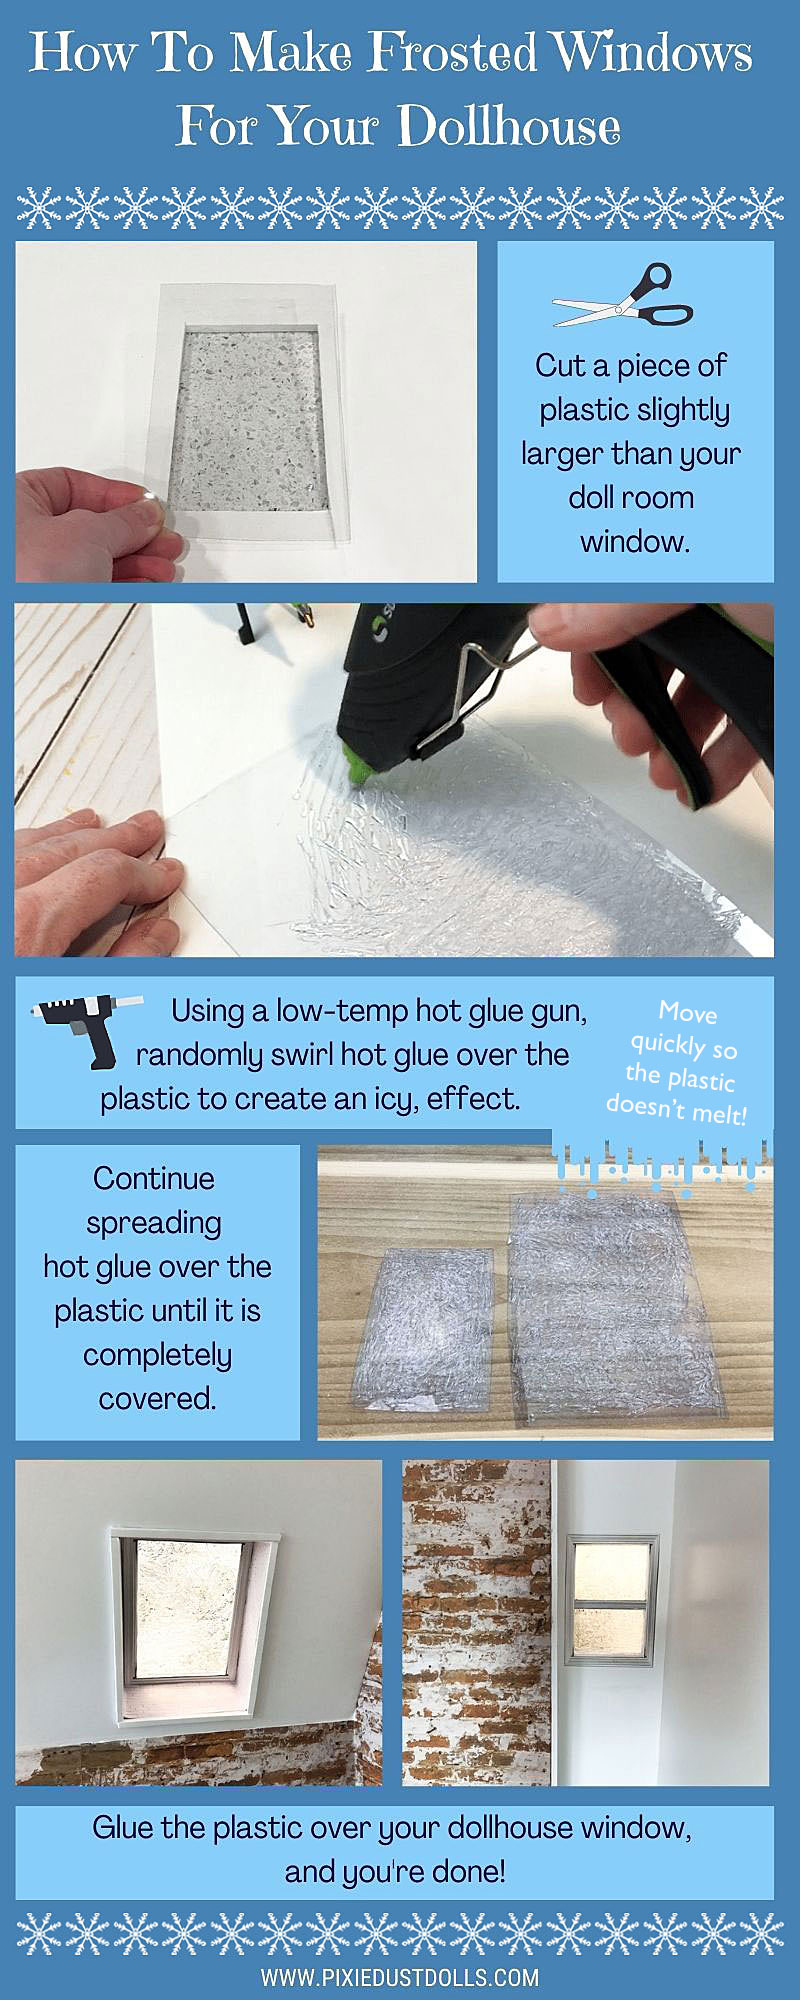 Make Frosted Windows For Your Dollhouse Using Hot Glue.